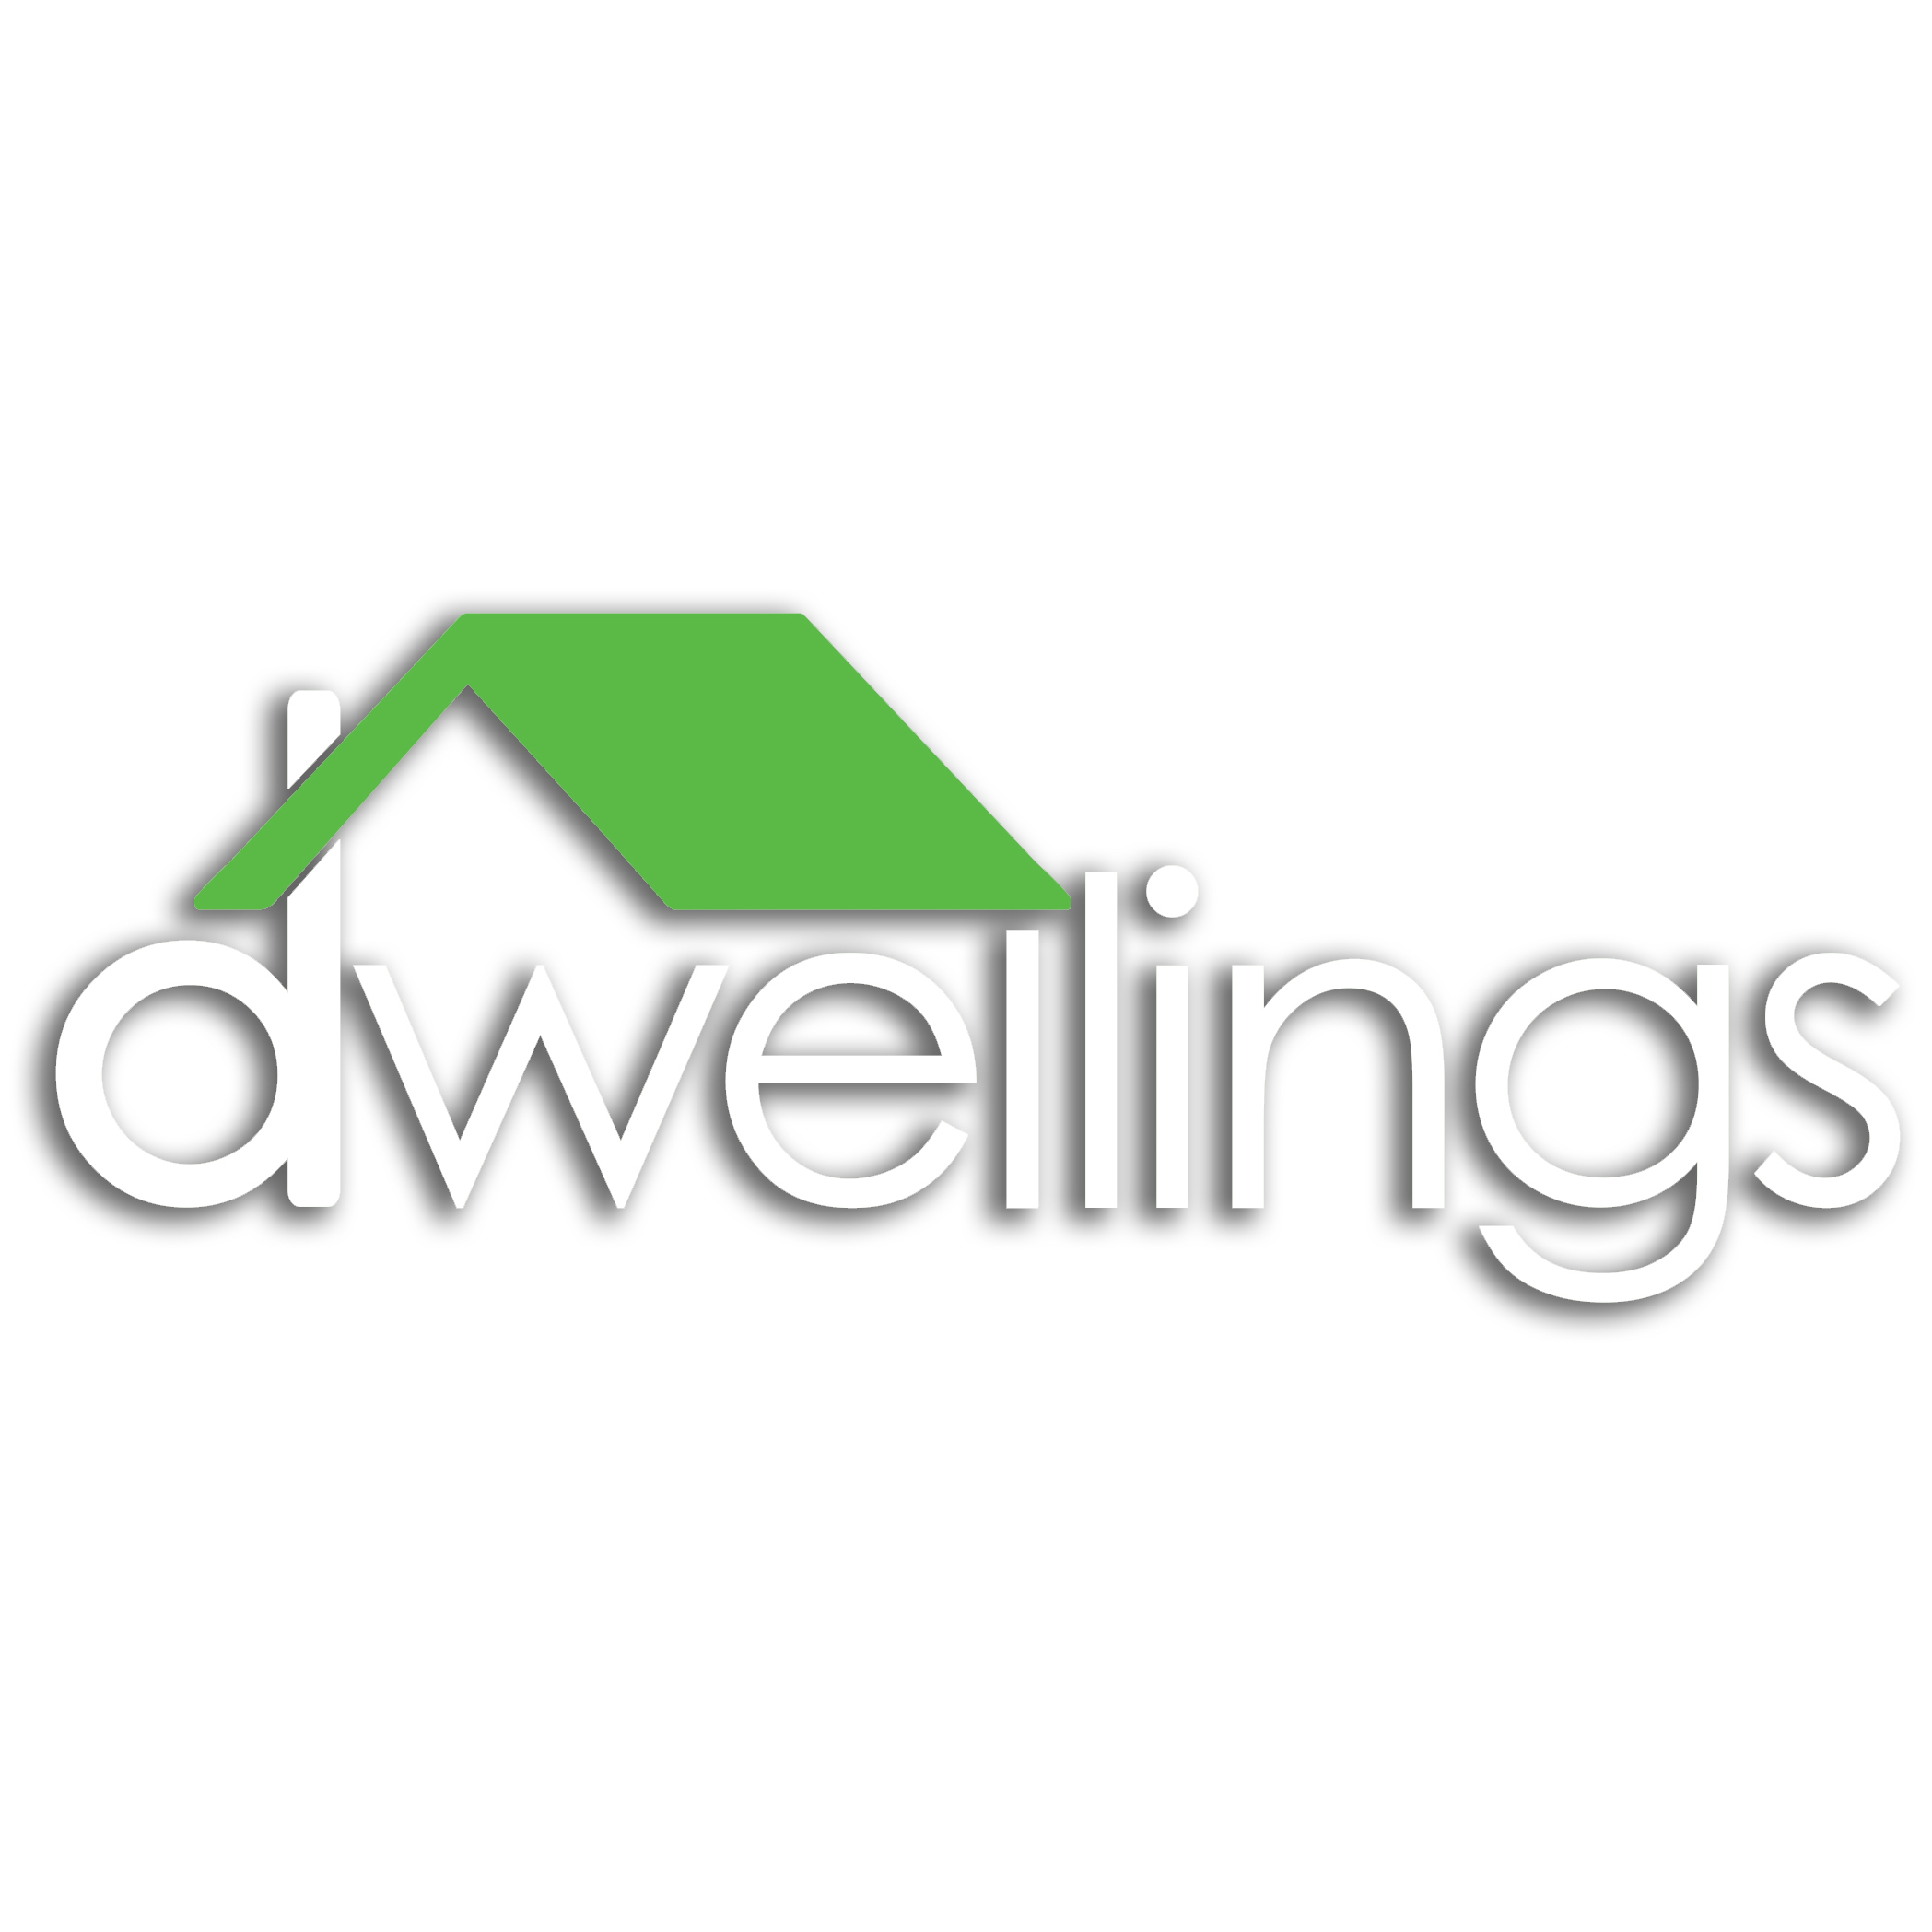 Dwellings Realty Group